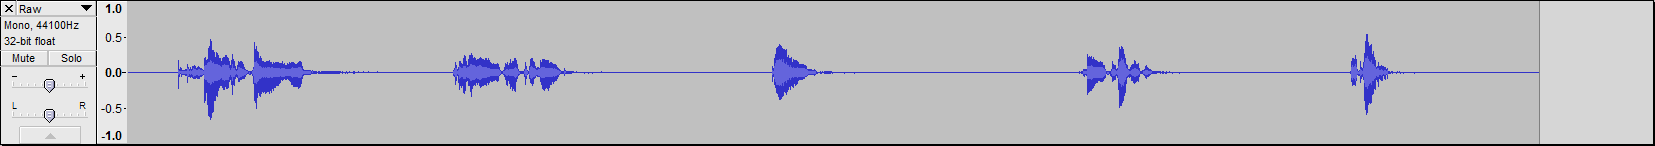 Audacity-Waveform-Raw